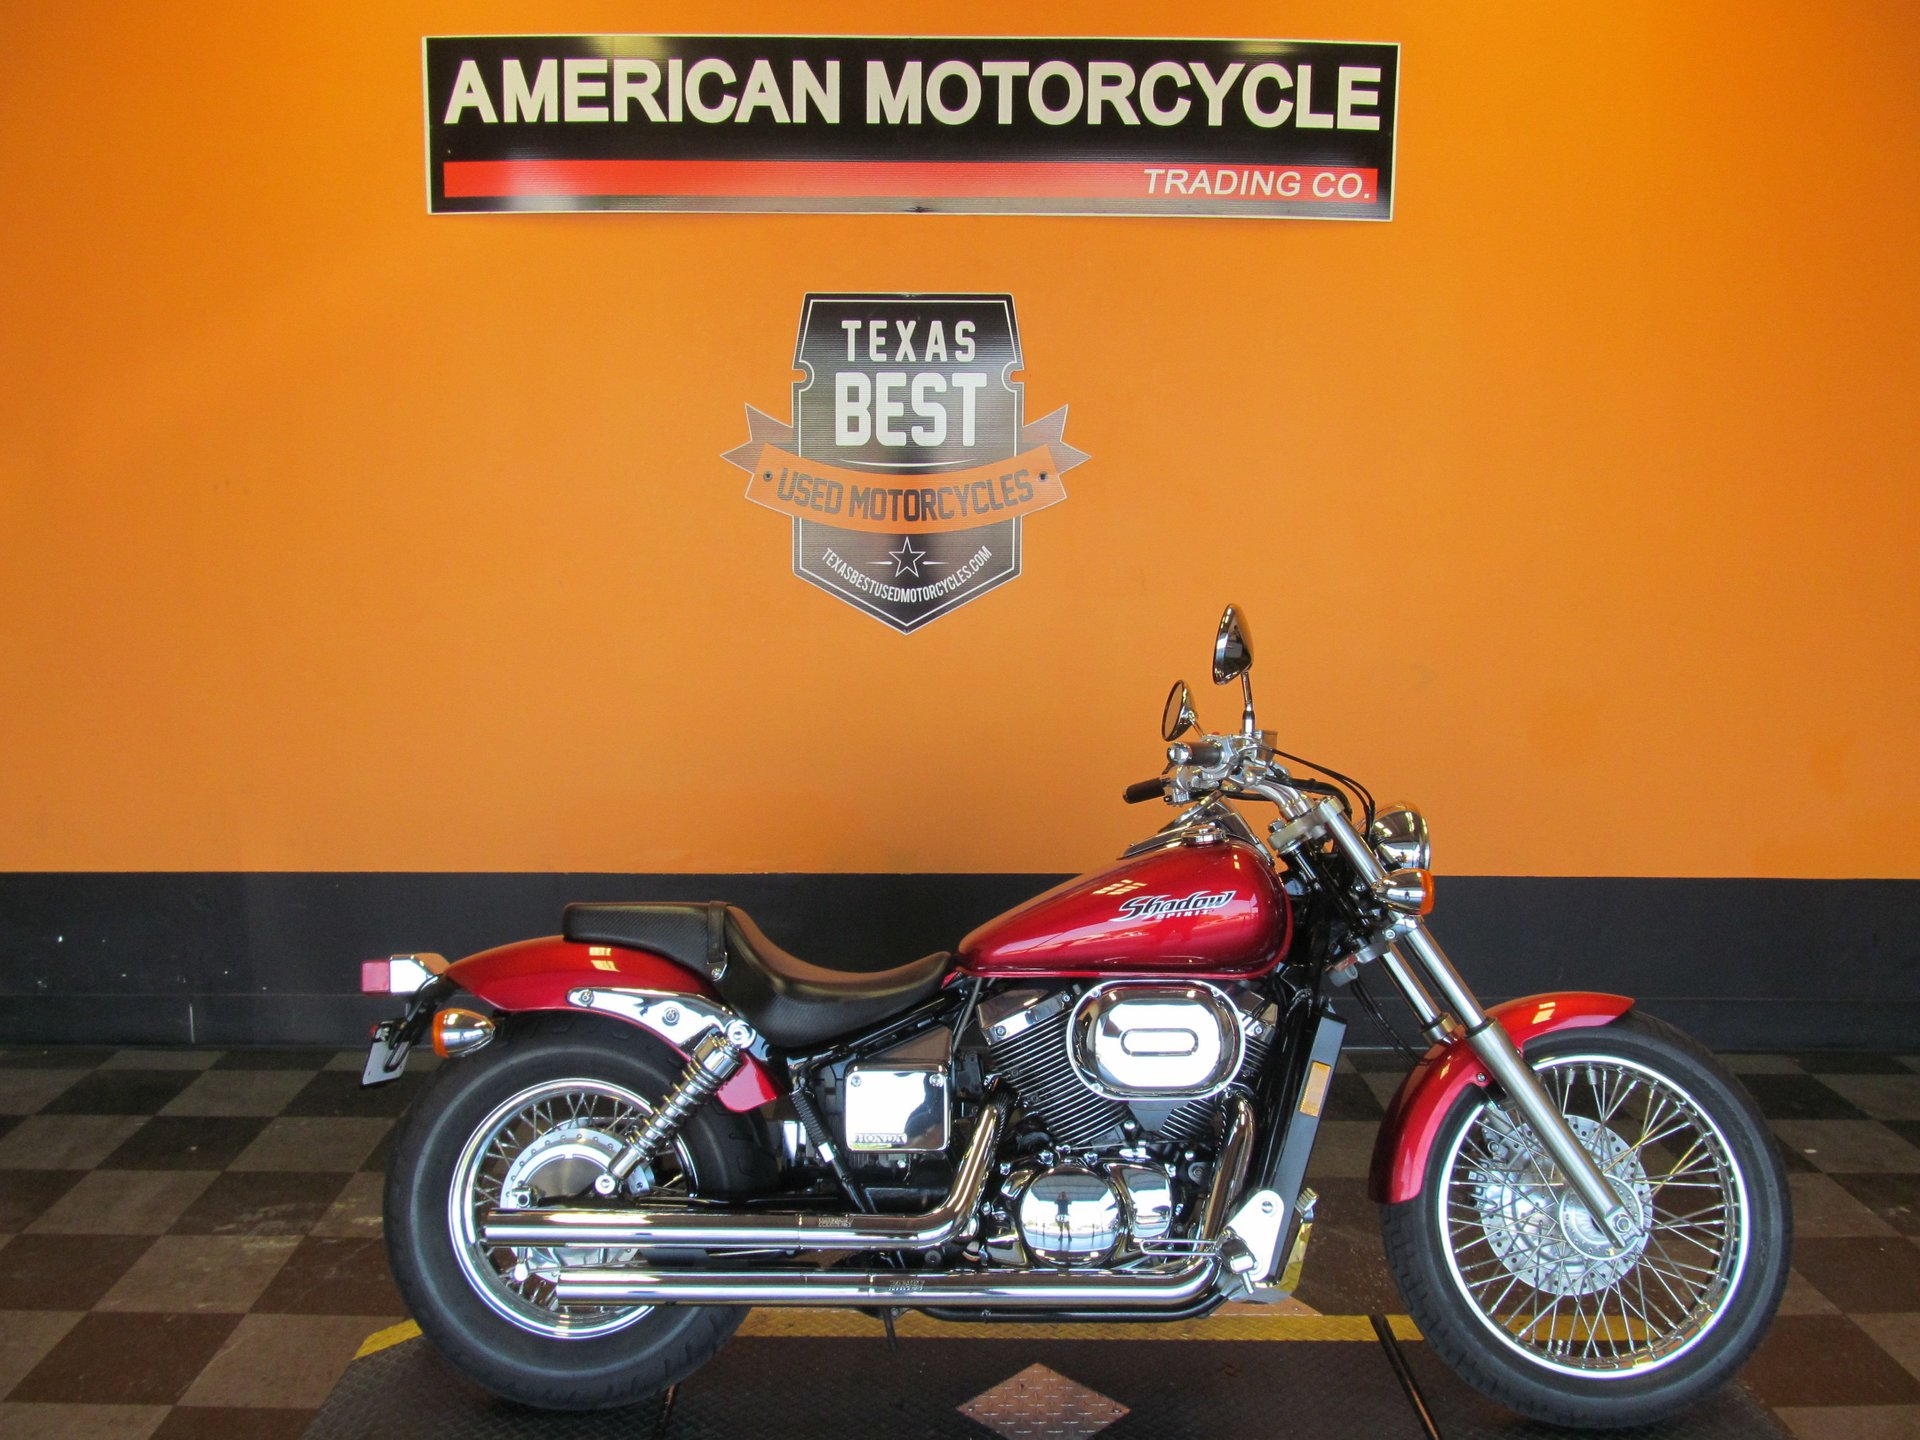 2007 honda shadow spirit vt750dc